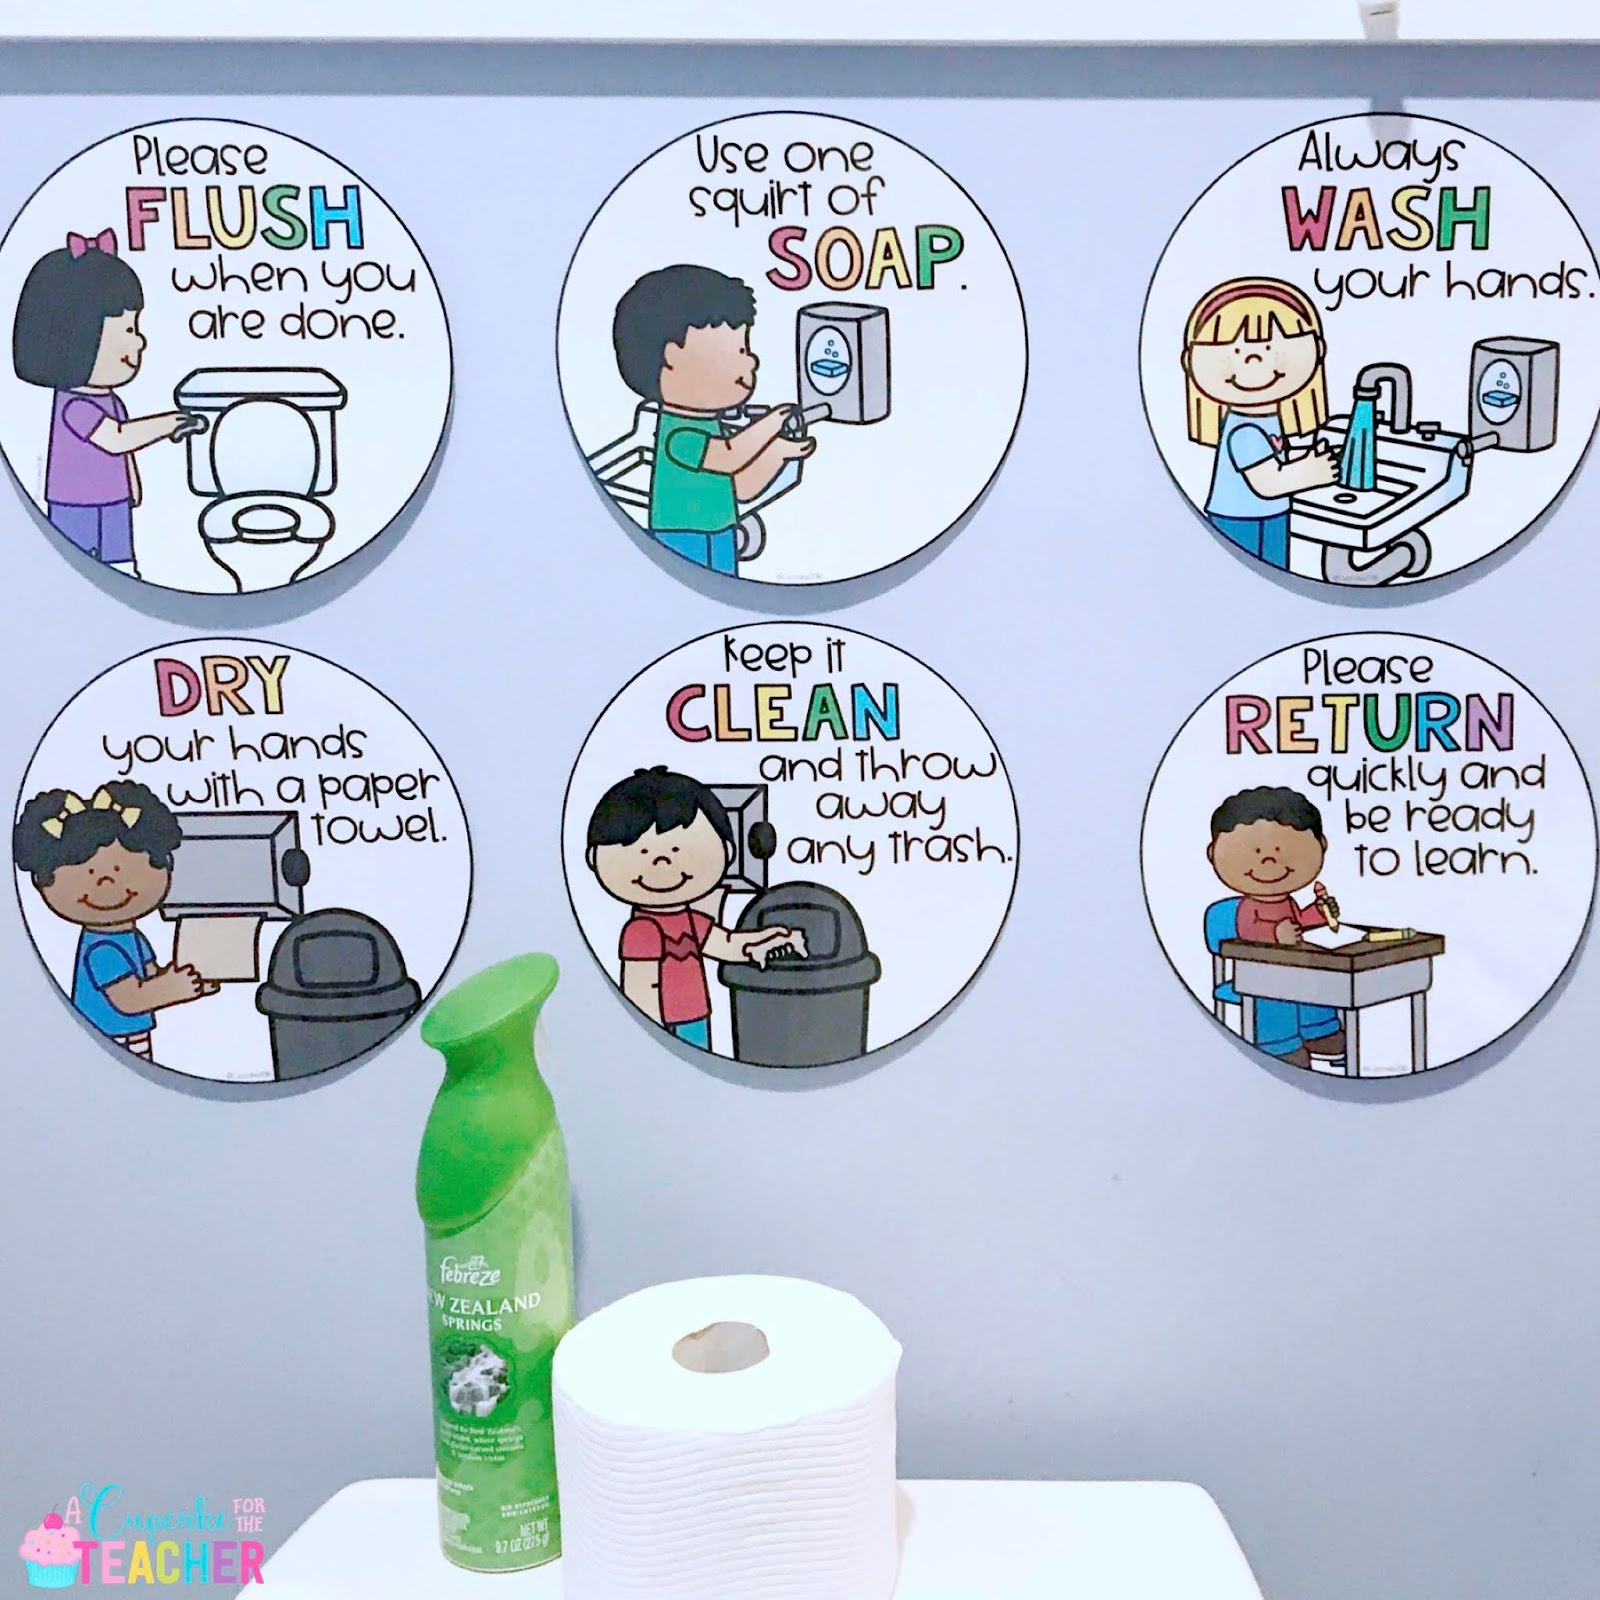 Bathroom Management in the Classroom.